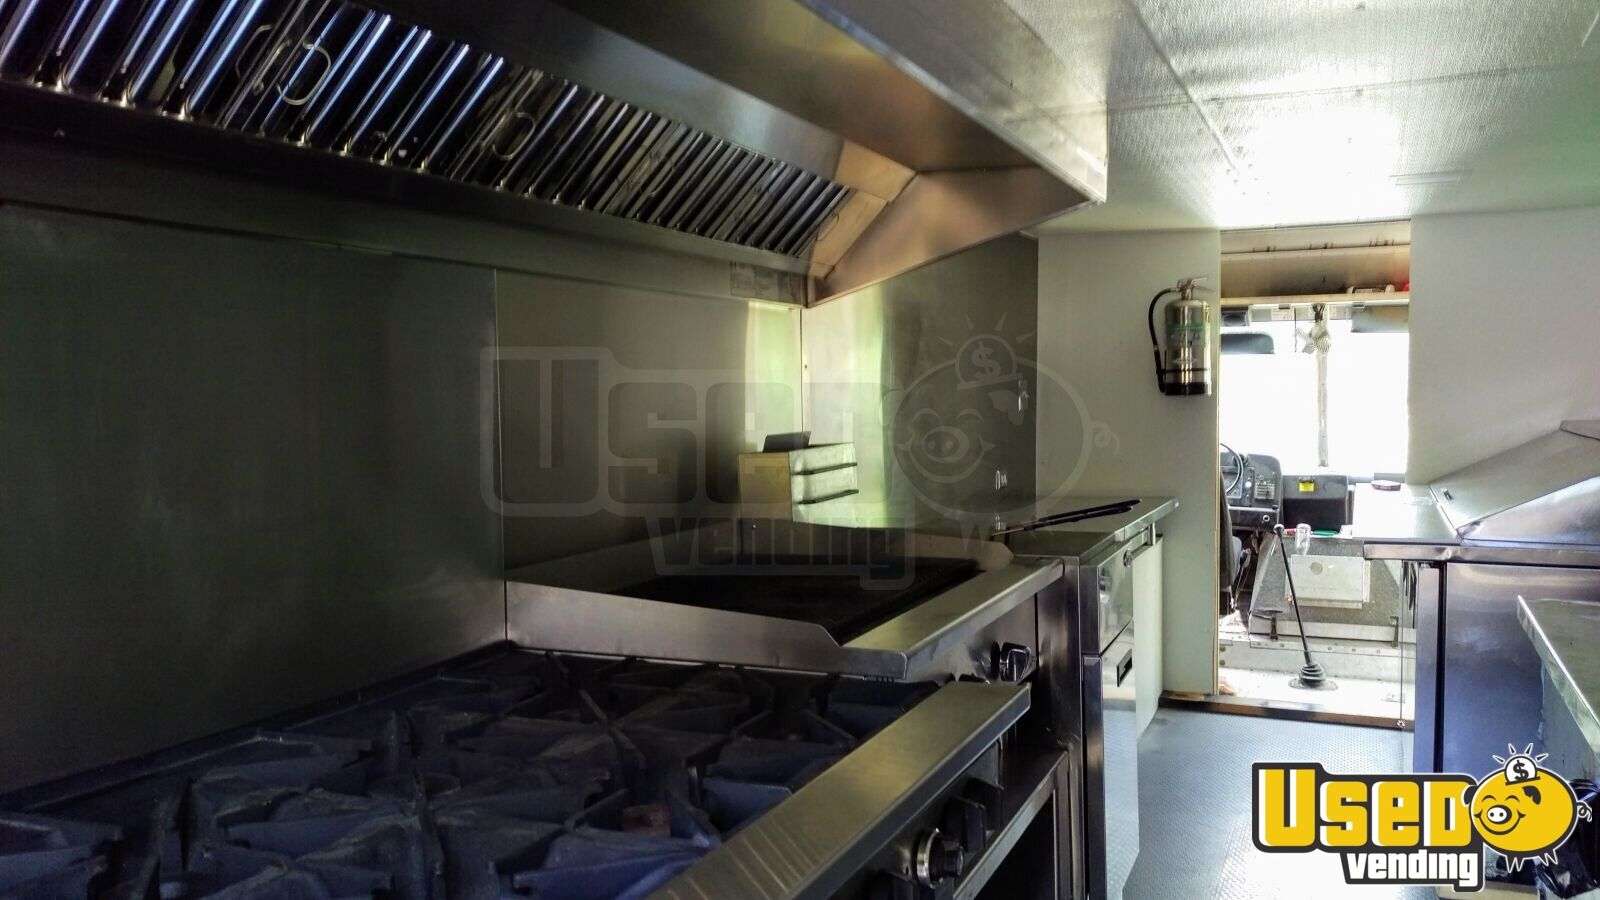 1999 Step Van Kitchen Food Truck All-purpose Food Truck Shore Power Cord Colorado Diesel Engine for Sale - 7